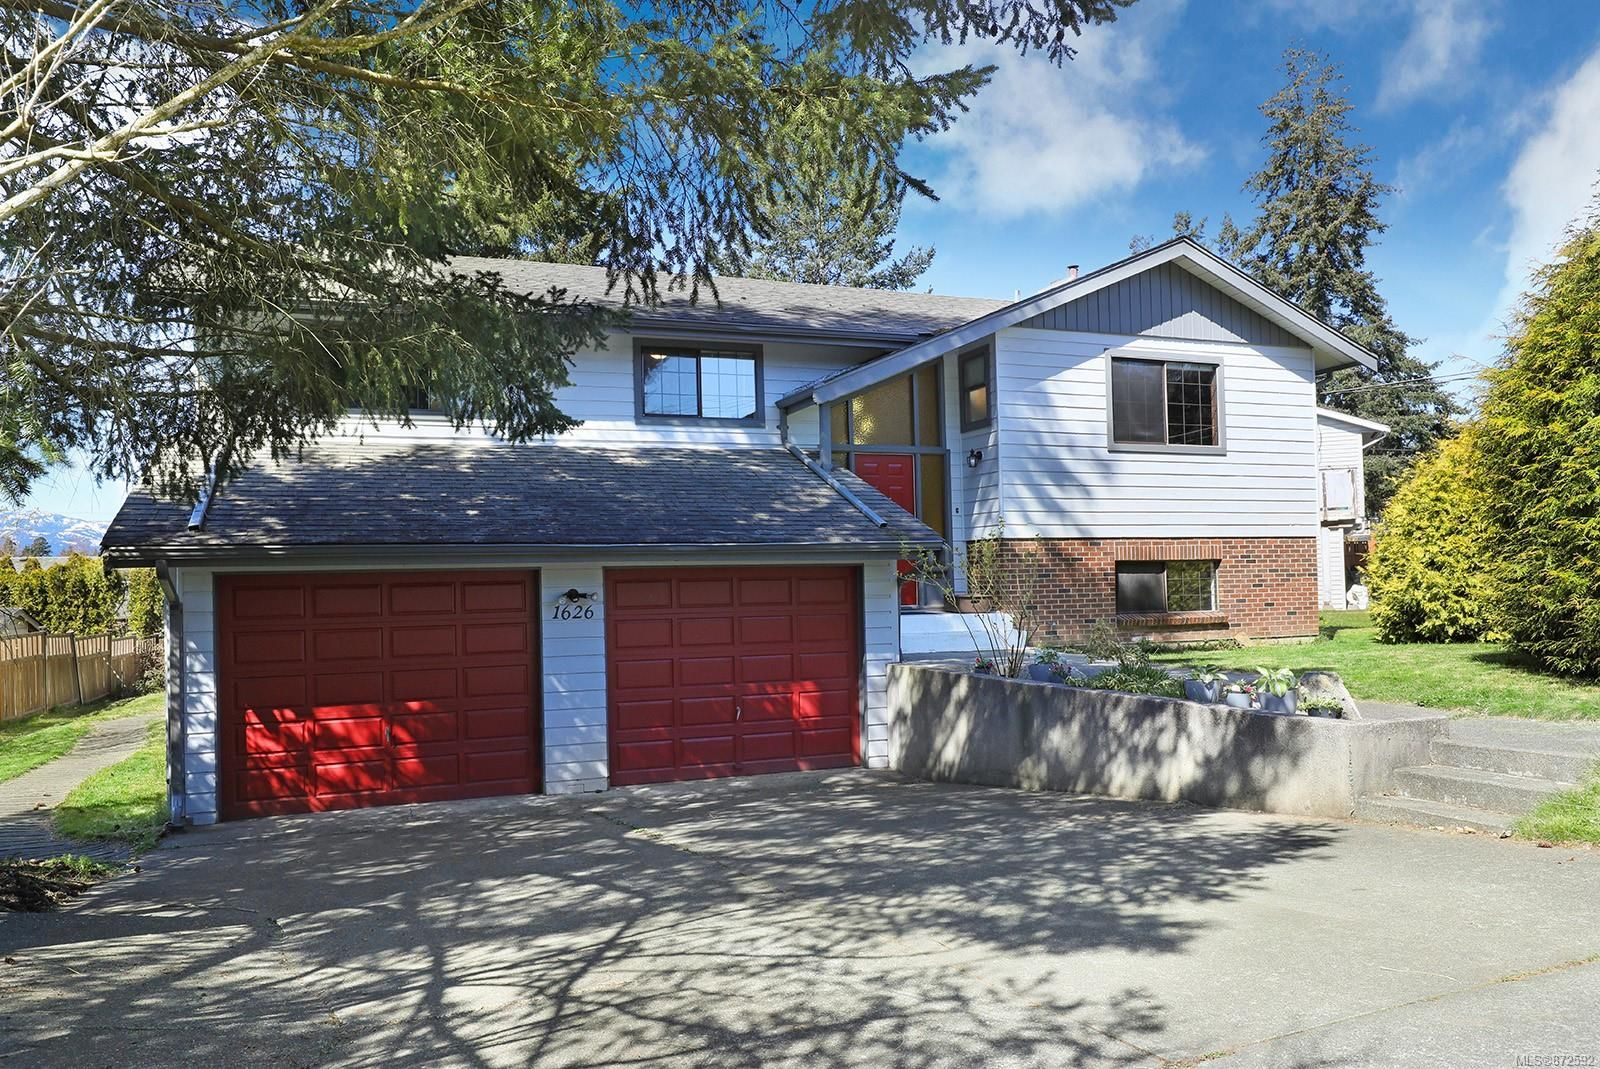 Photo 33: Photos: 1626 Valley Cres in : CV Courtenay East House for sale (Comox Valley)  : MLS®# 872592